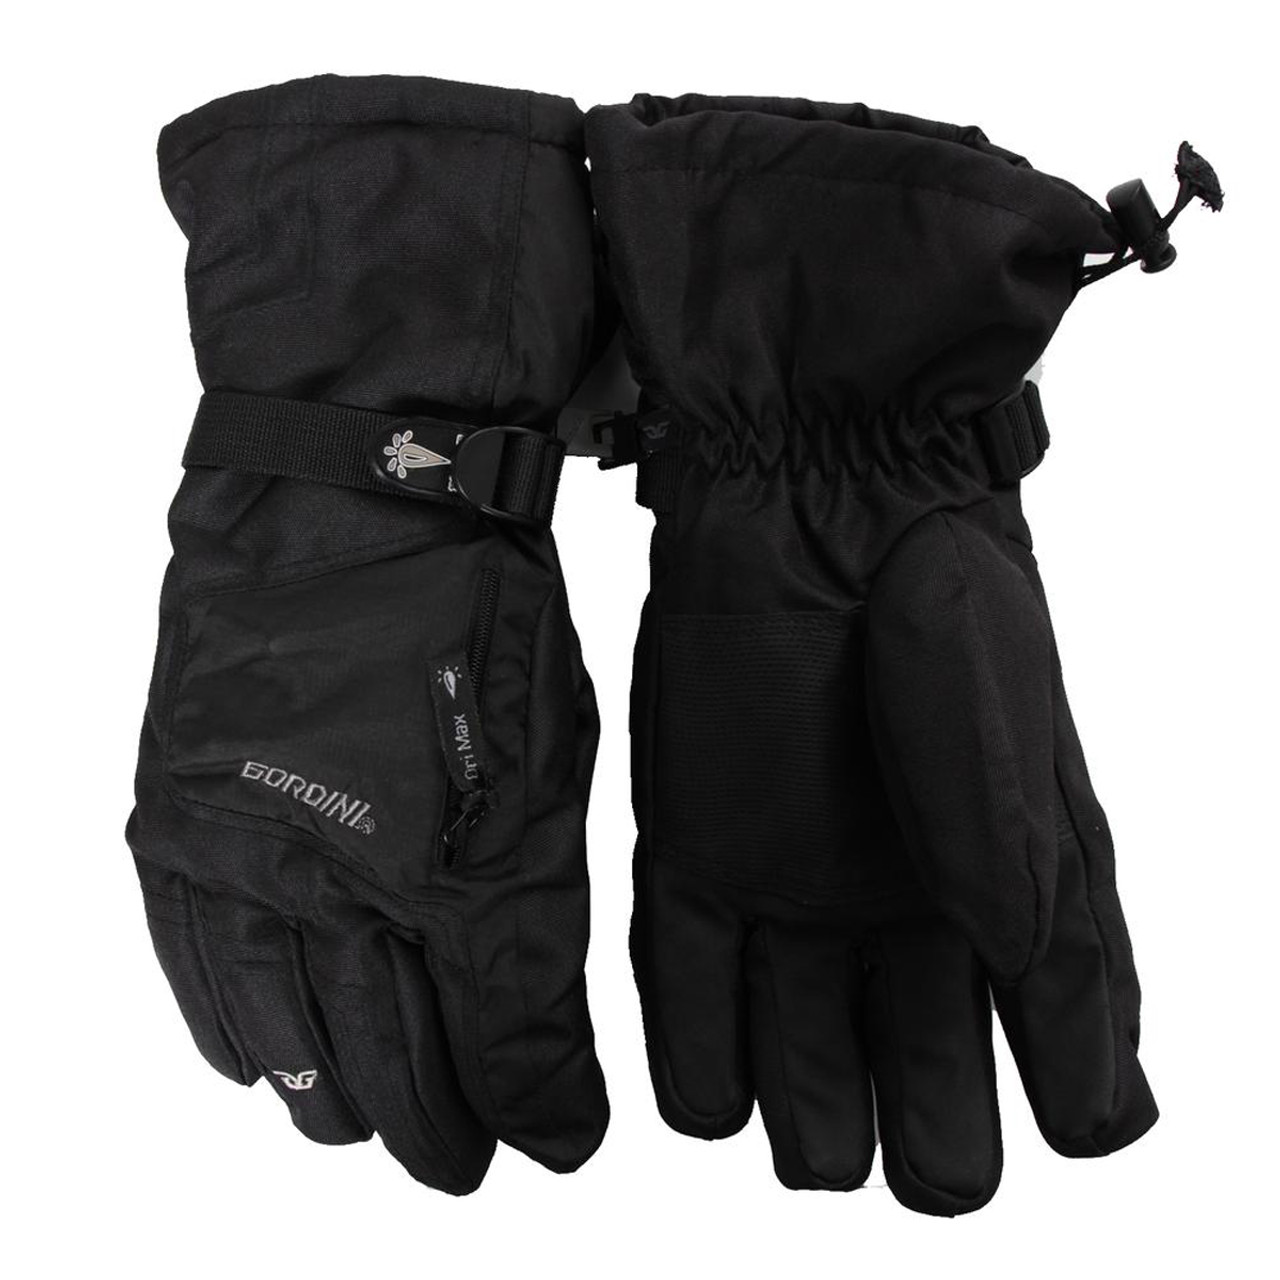 f1d70896277dc Gordini Ultra Dri-Max Gauntlet IV Men's Ski & Snowboard Gloves ...